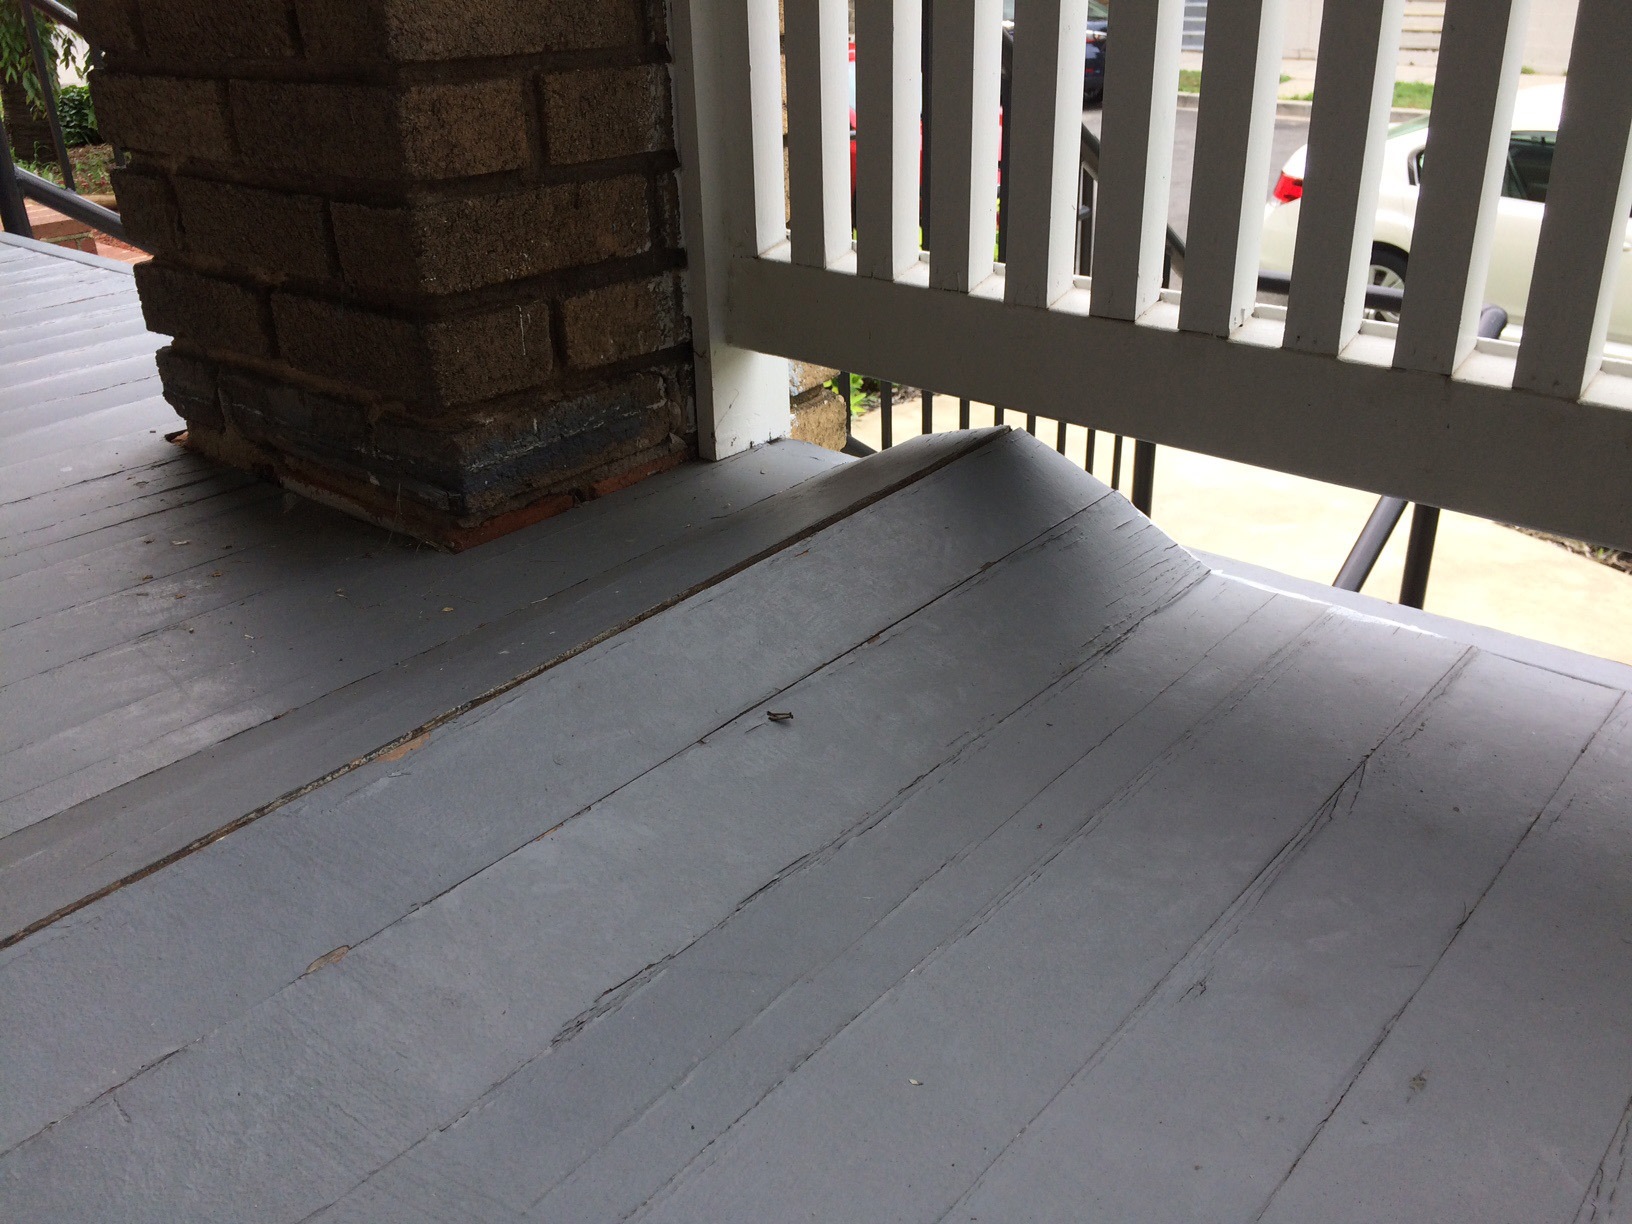 Dealing With A Wooden Porch That Buckles When It Rains The